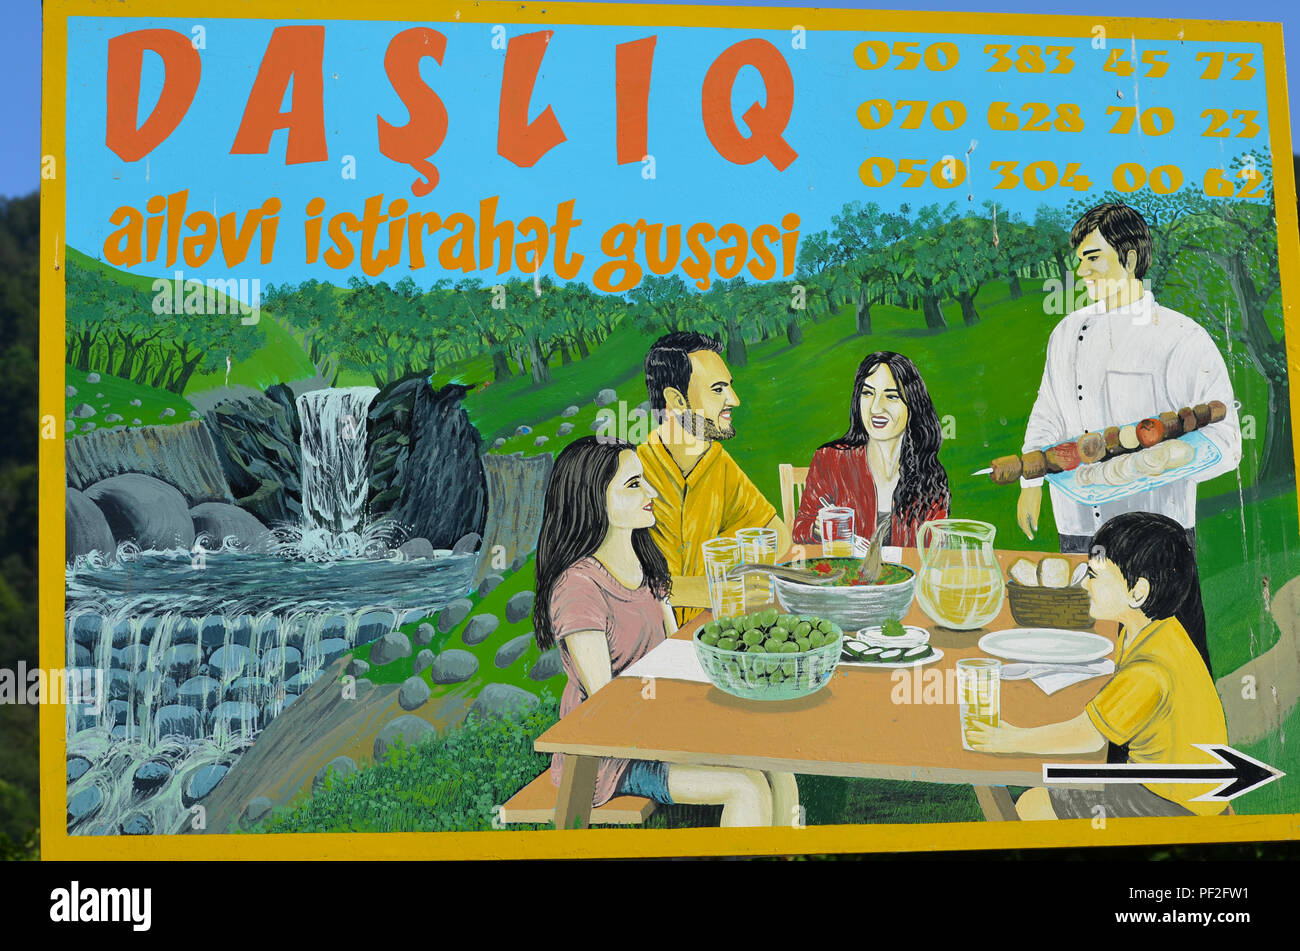 Restaurant billboard aimed at local visitors near Zaqatala, northwestern Azerbaijan - Stock Image